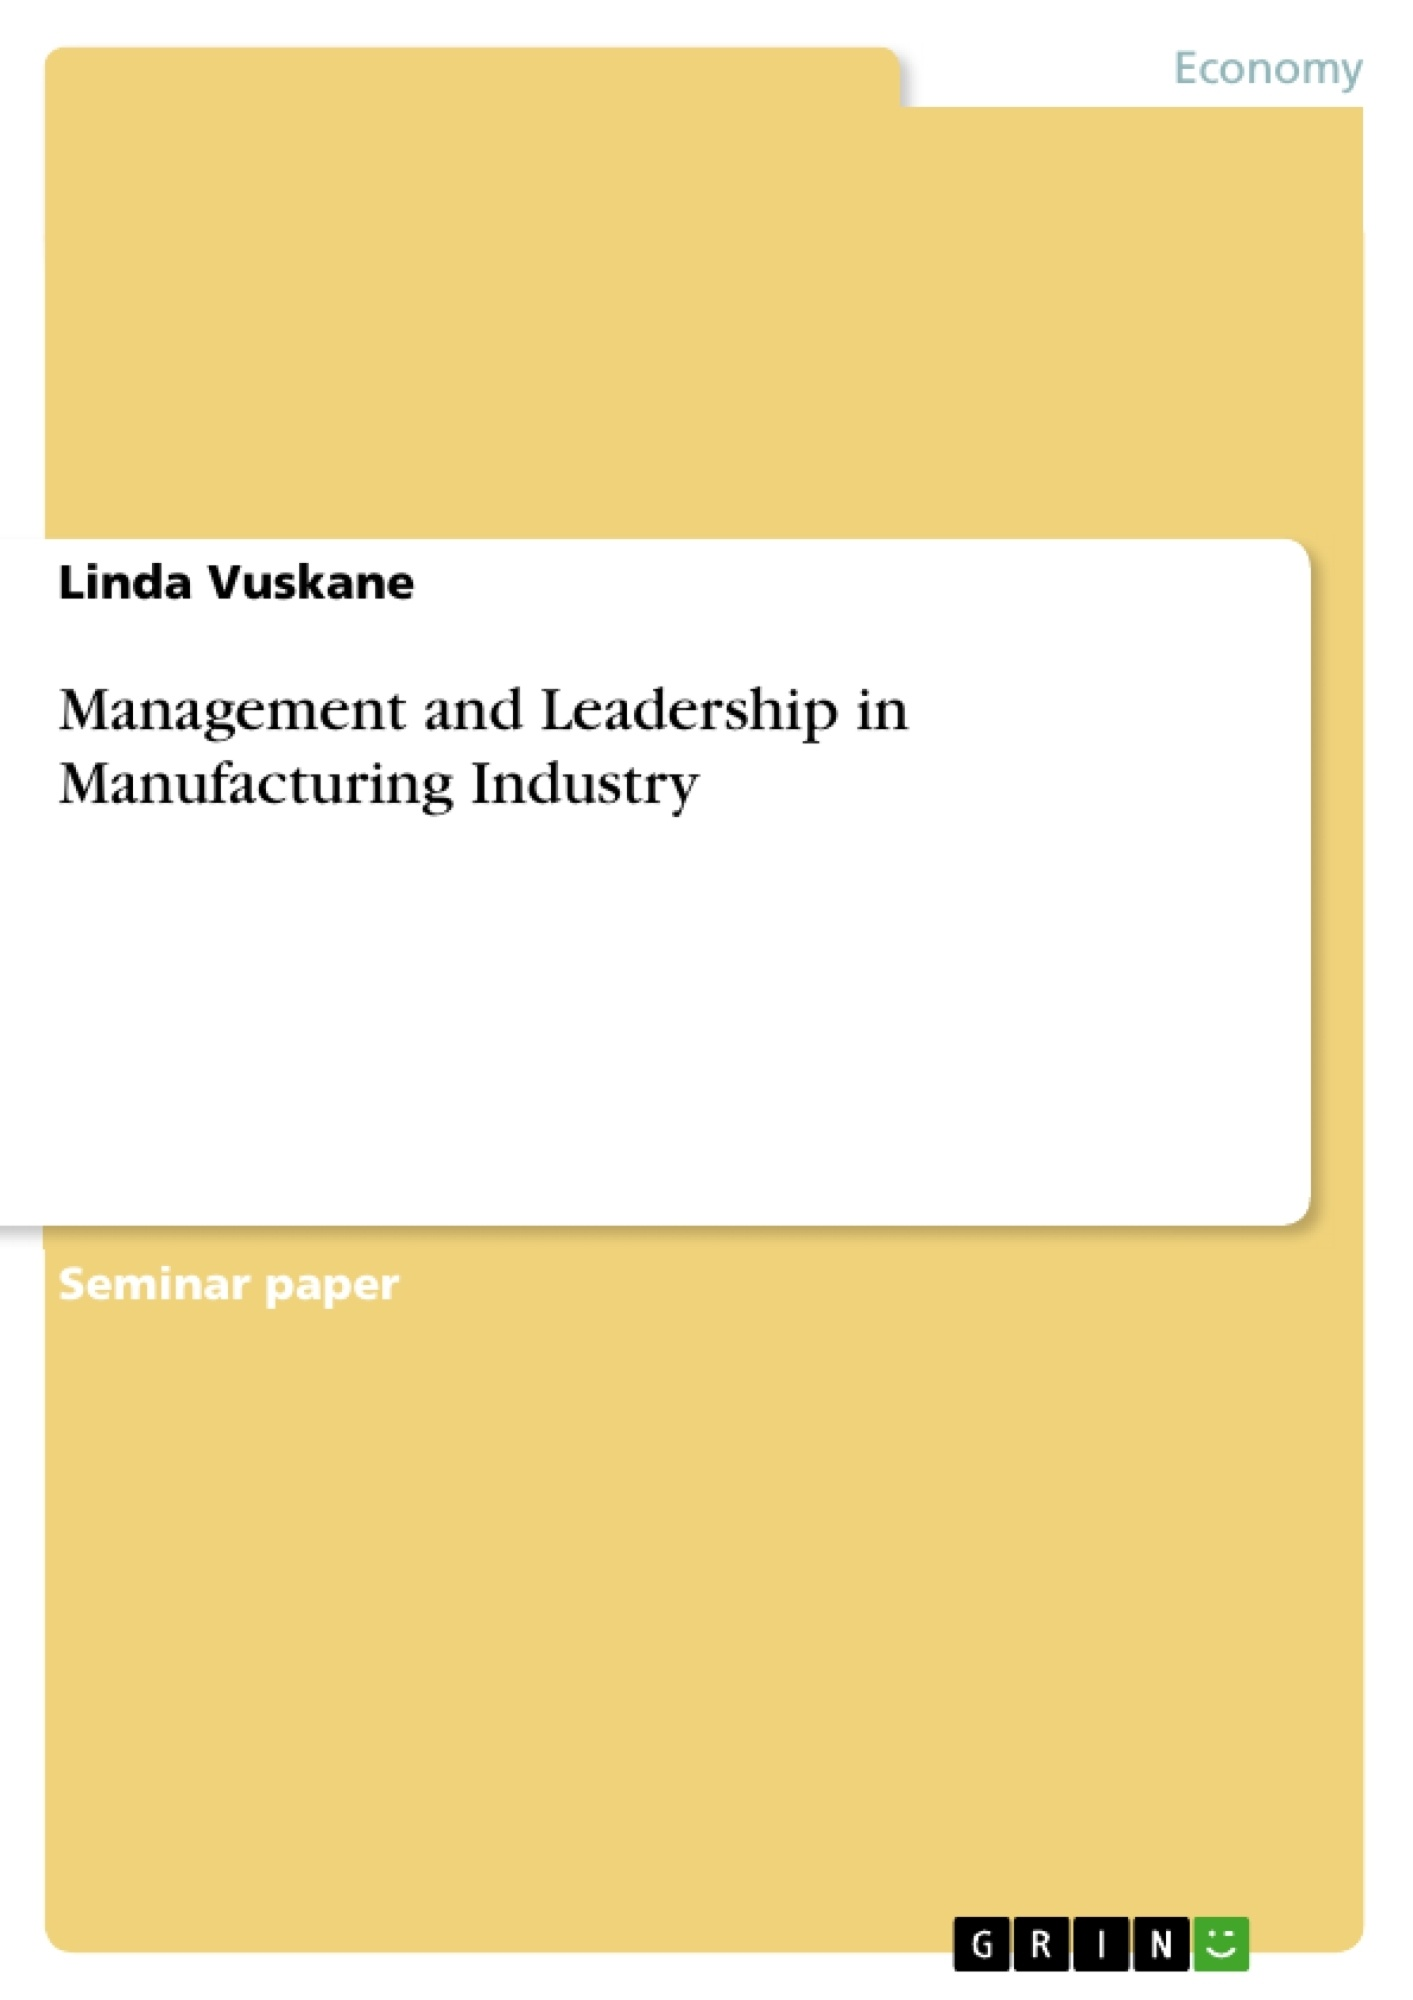 Title: Management and Leadership in Manufacturing Industry